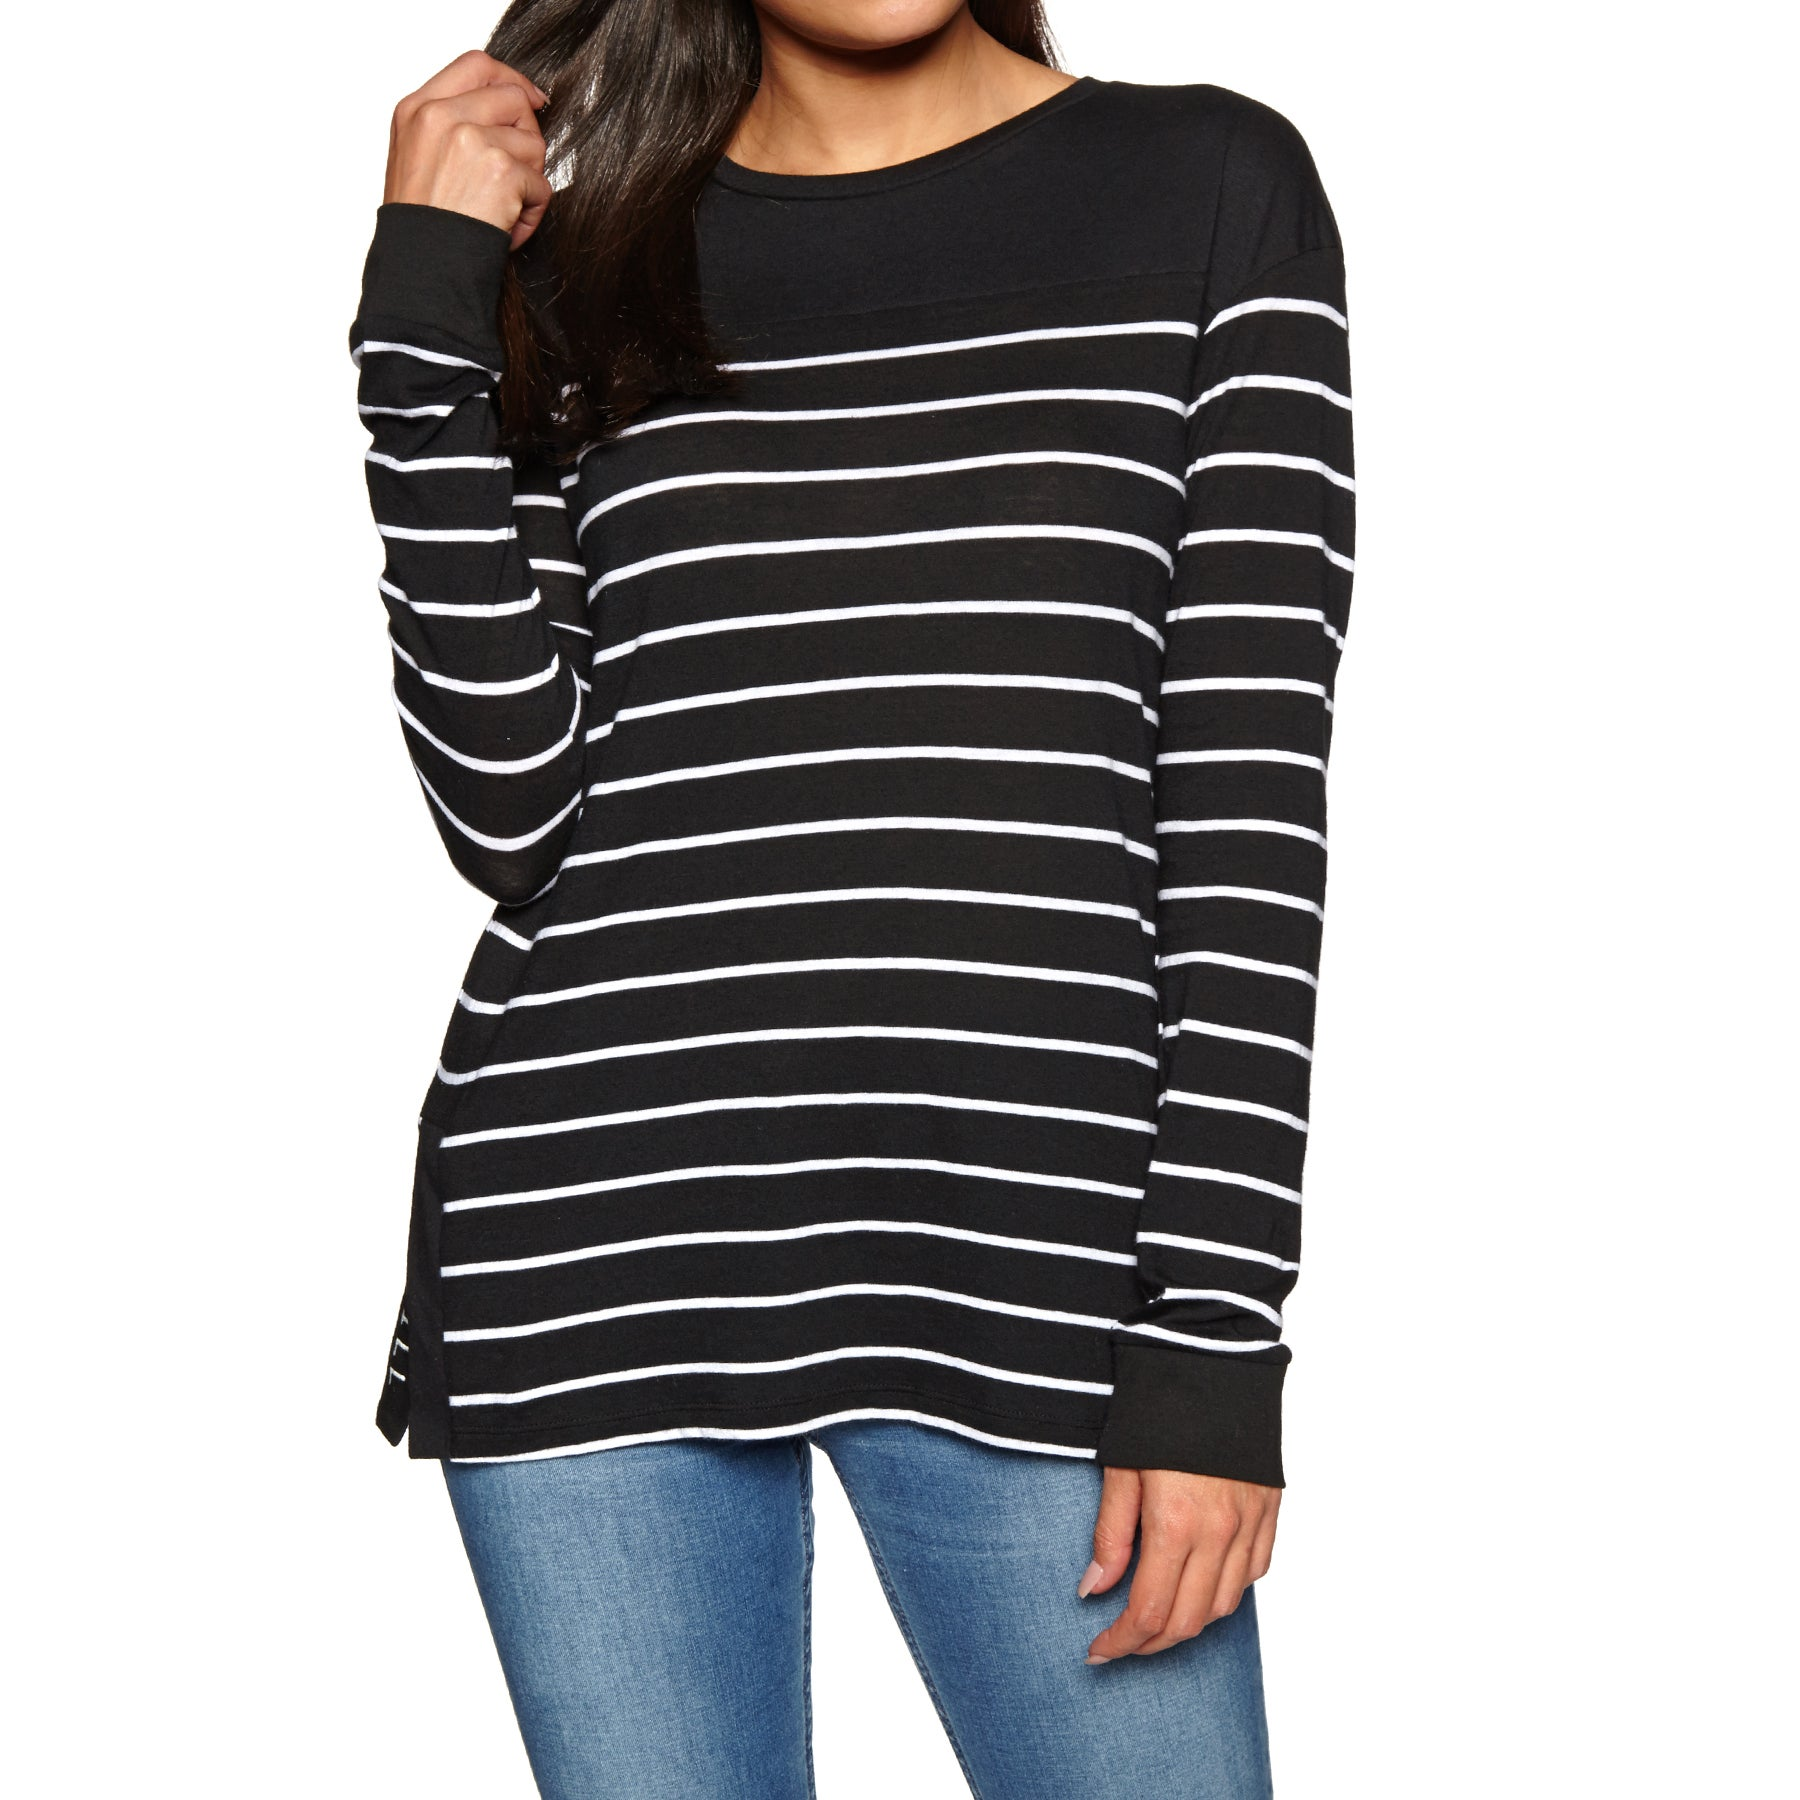 O Neill Stripe Relaxed Ladies Top